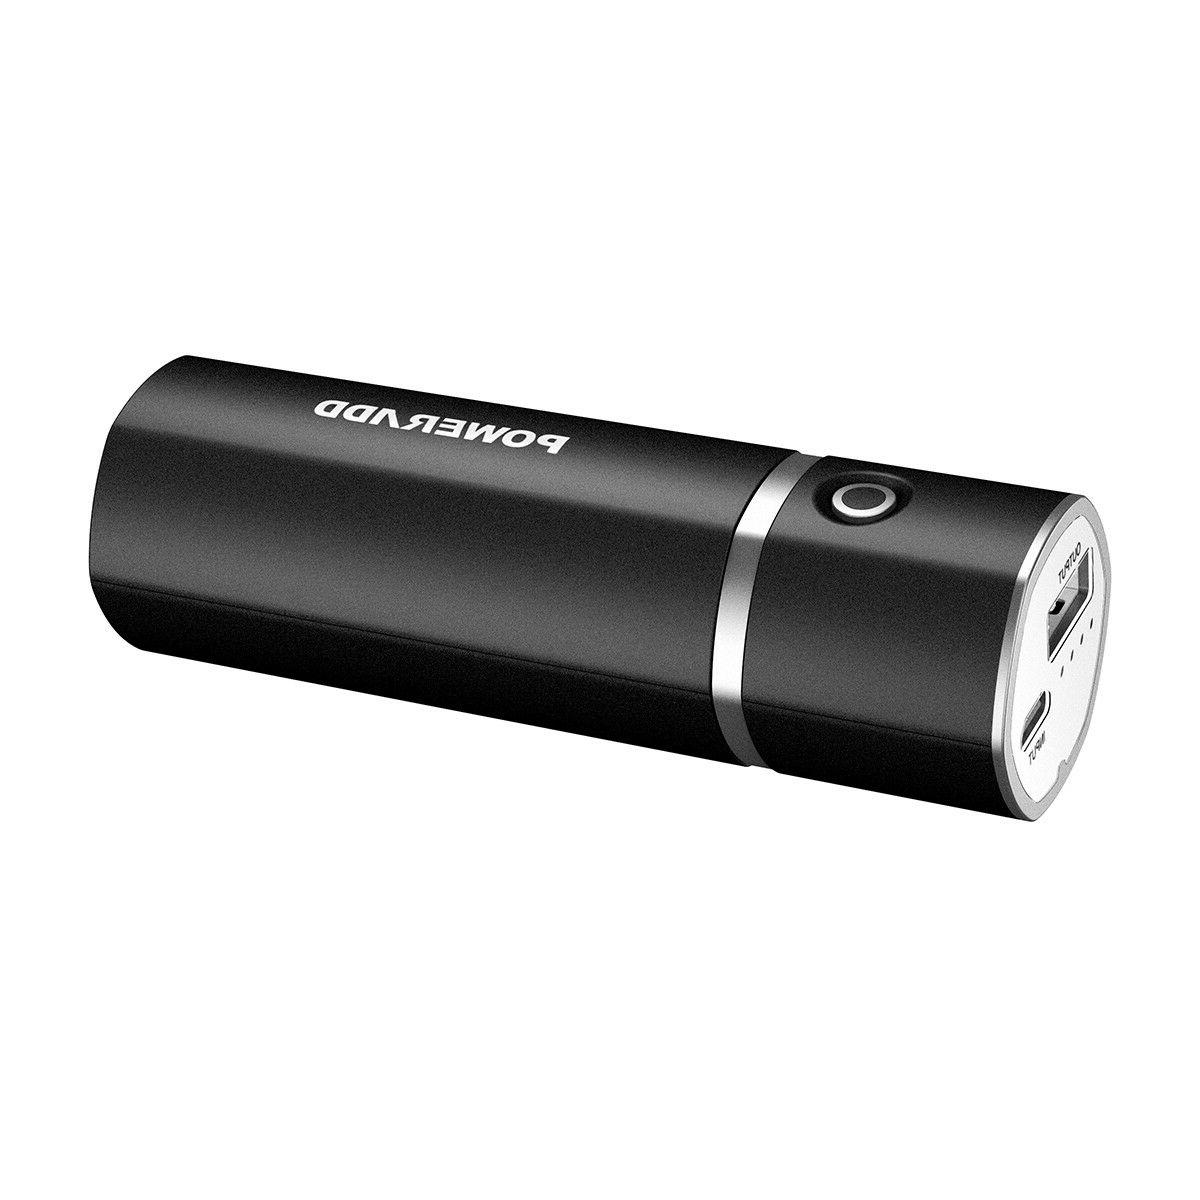 Poweradd Portable Charger USB Battery